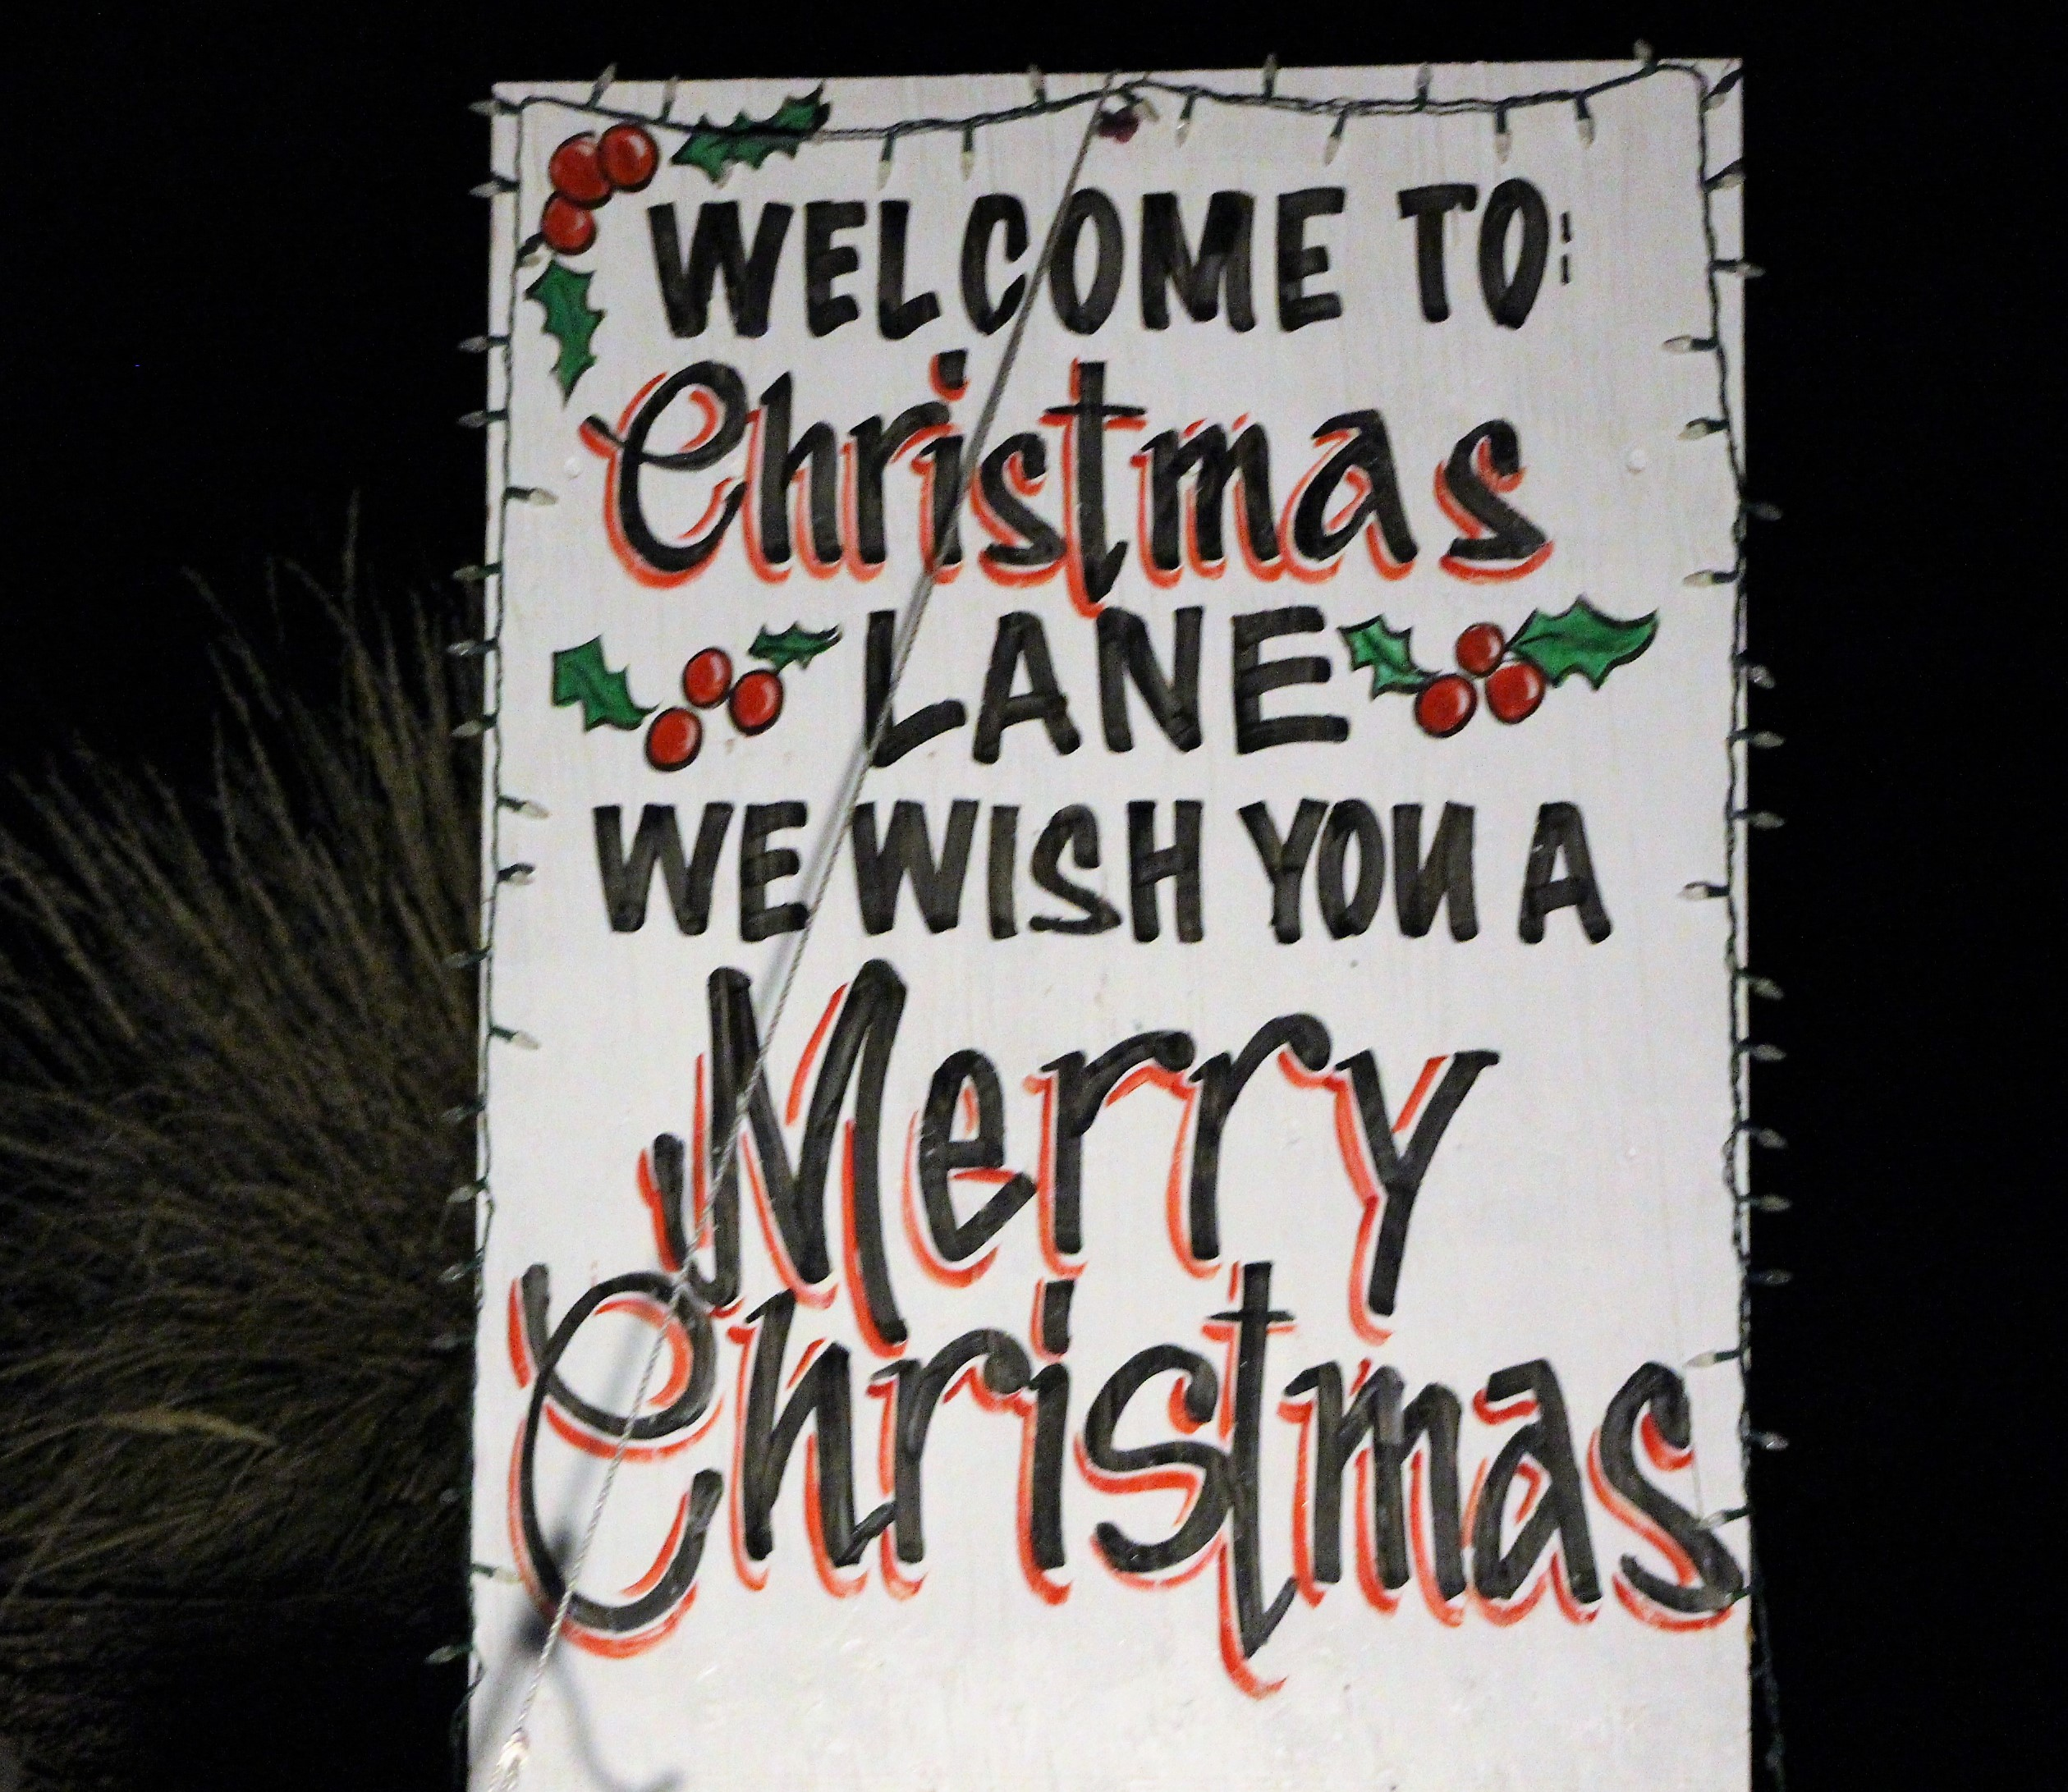 Christmas Lane turned on their lights Thanksgiving Weekend for the holidays. Cedar City, Utah, Nov. 26, 2016 | Photo by Tracie Sullivan, St. George / Cedar City News